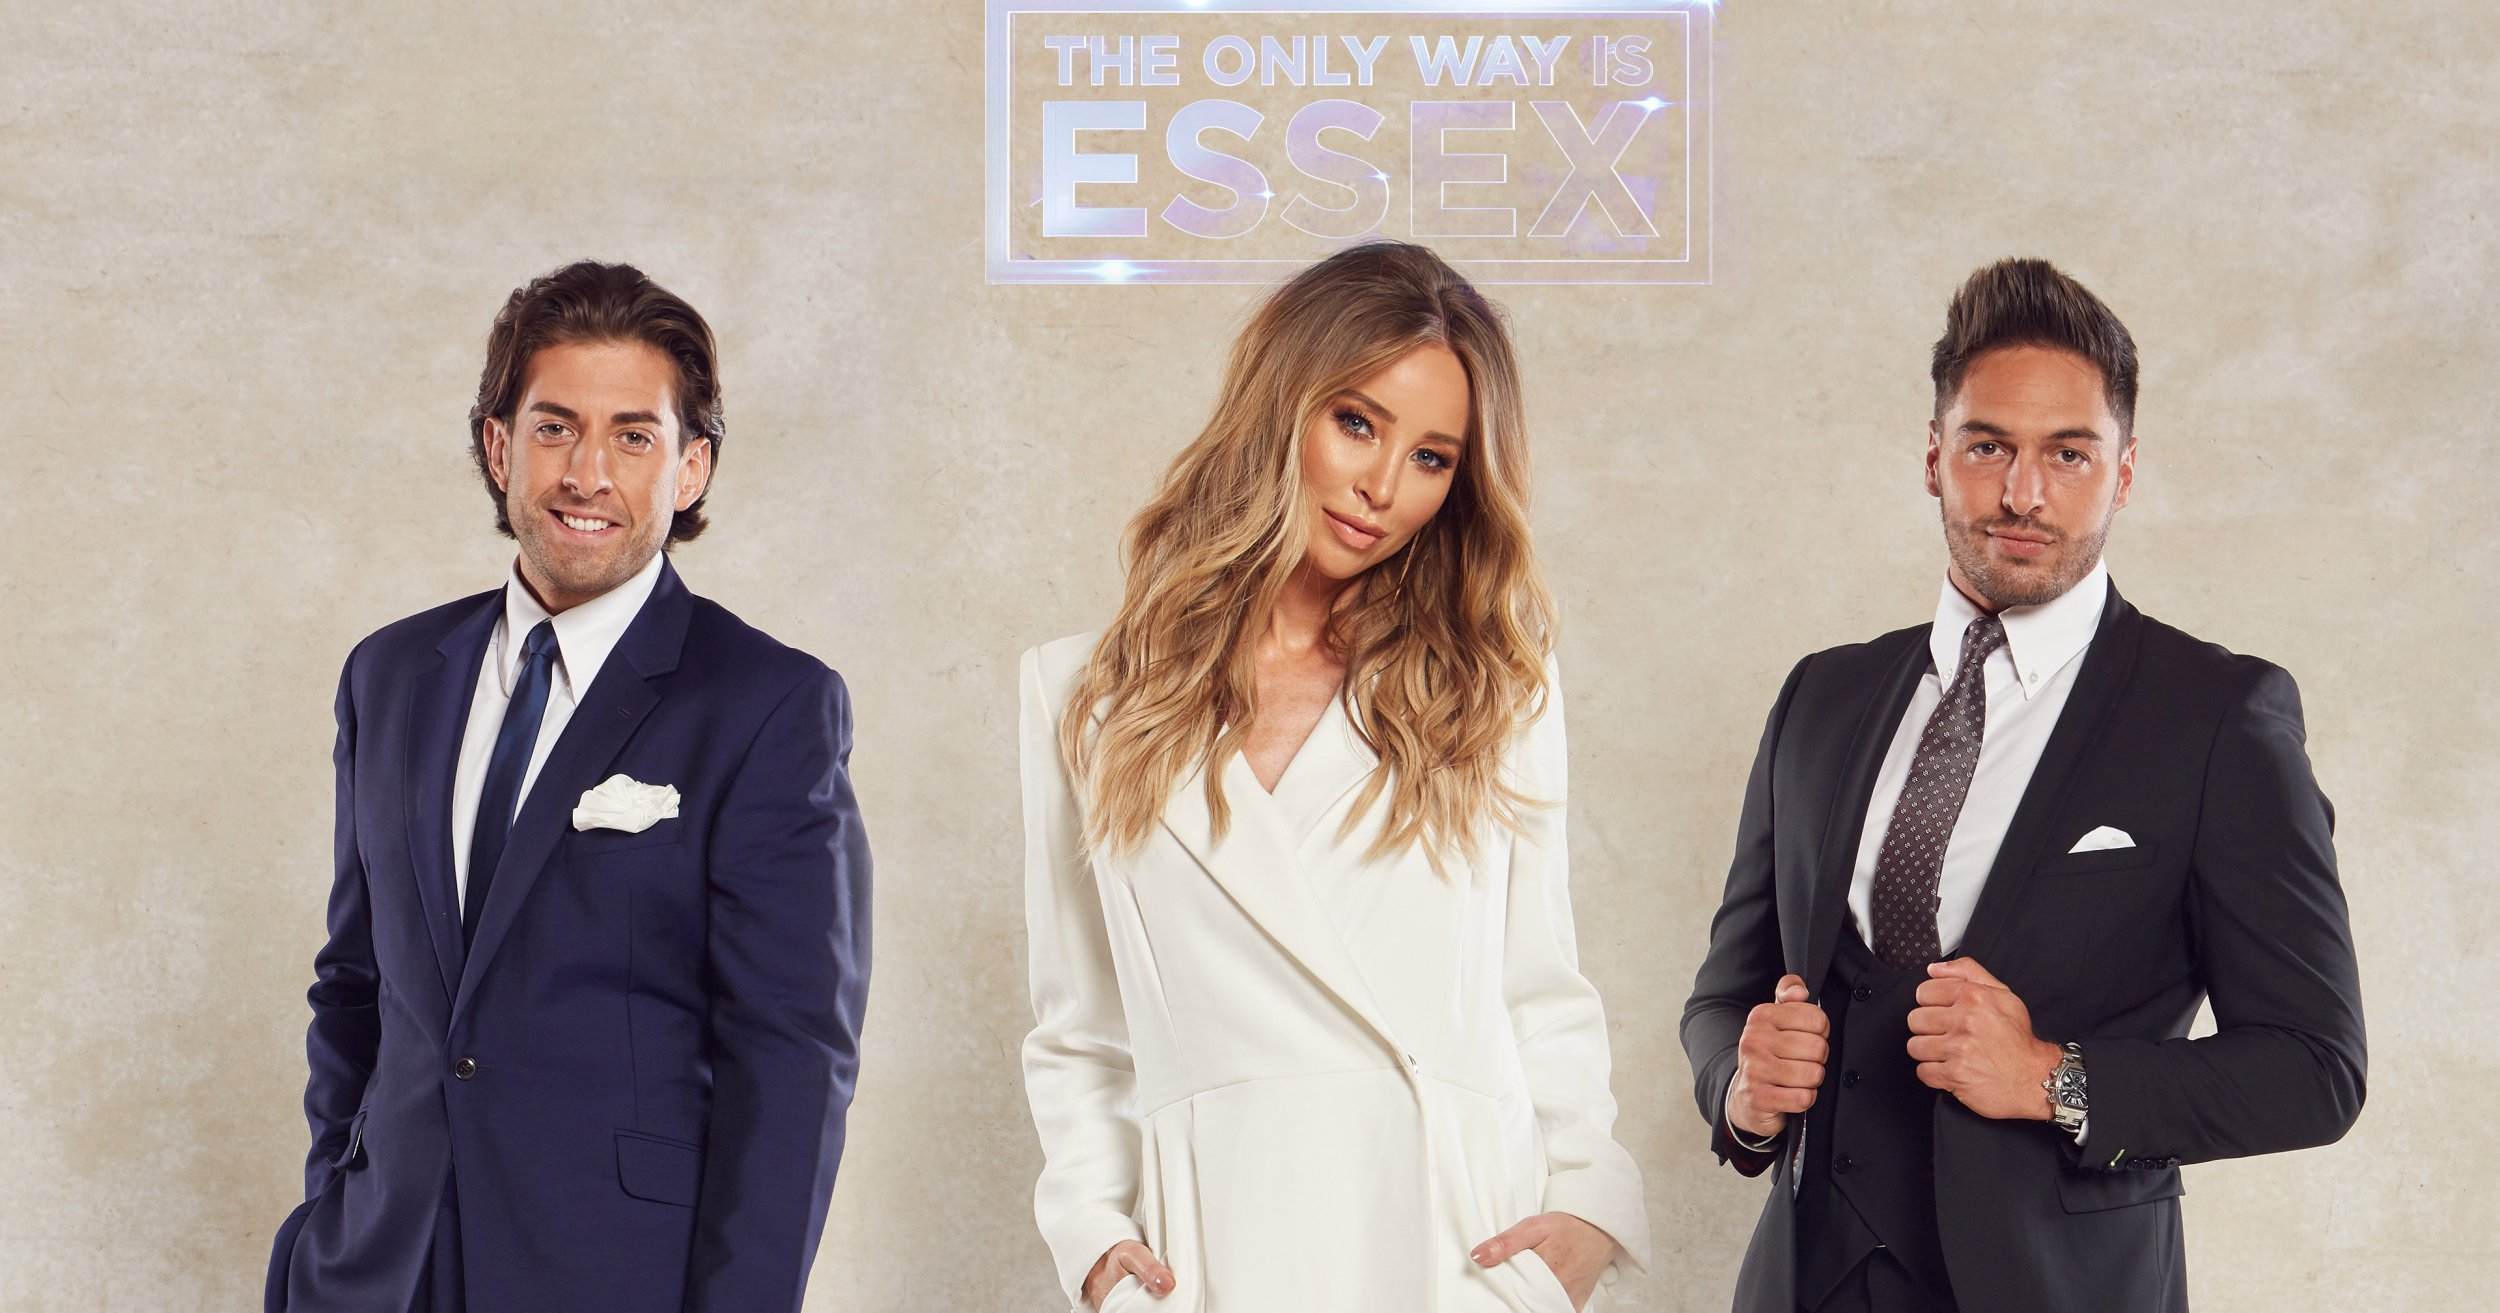 James Argent, Lauren Pope and Mario Falcone prove The Only Way IS Essex as they return for new series